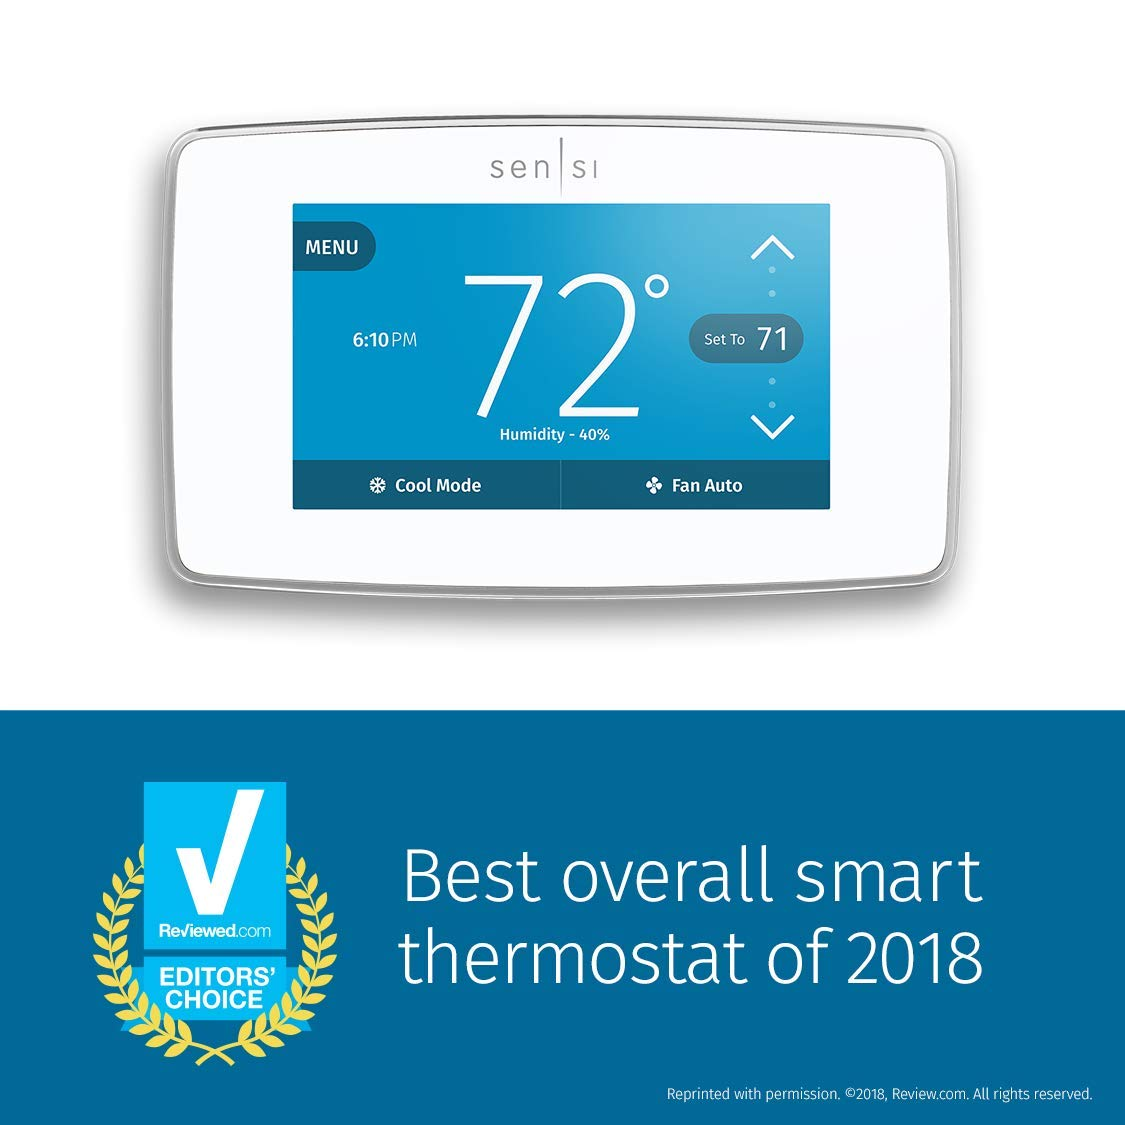 Emerson St75w Sensi Touch Wi Fi Thermostat With Touchscreen Color Multiple Baseboard Heater Wiring Display For Smart Home White Works Alexa